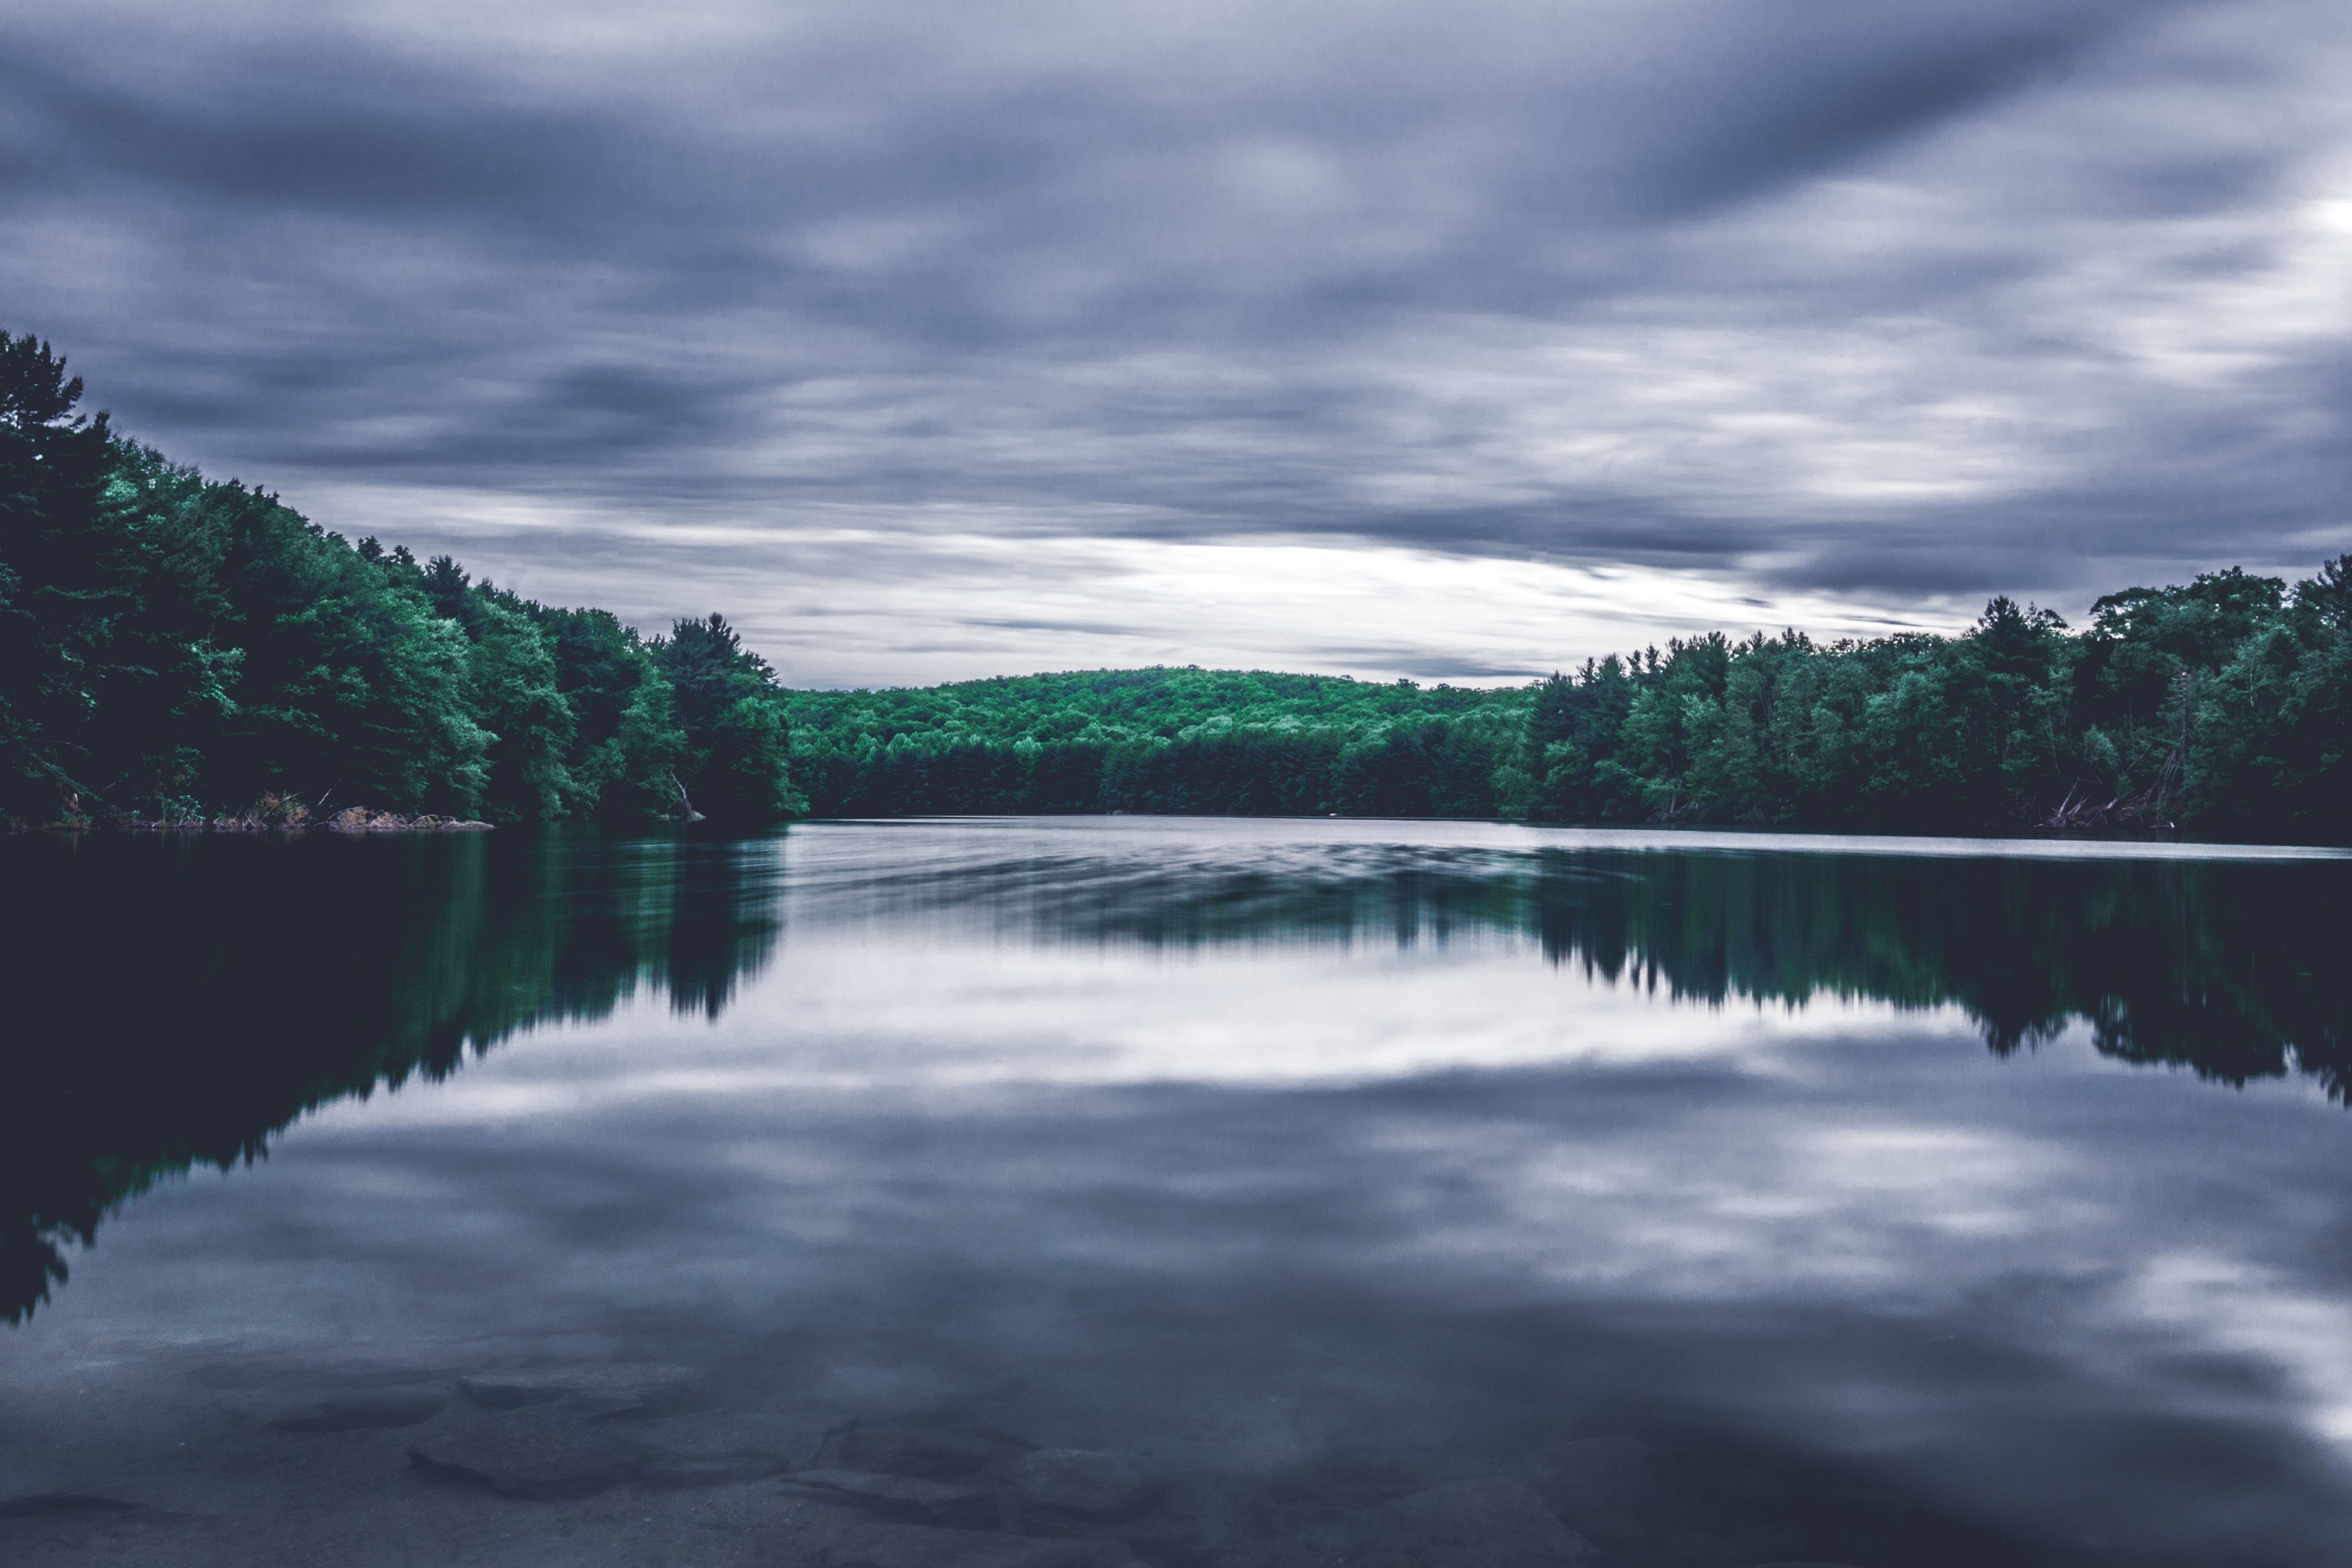 green trees reflected on water